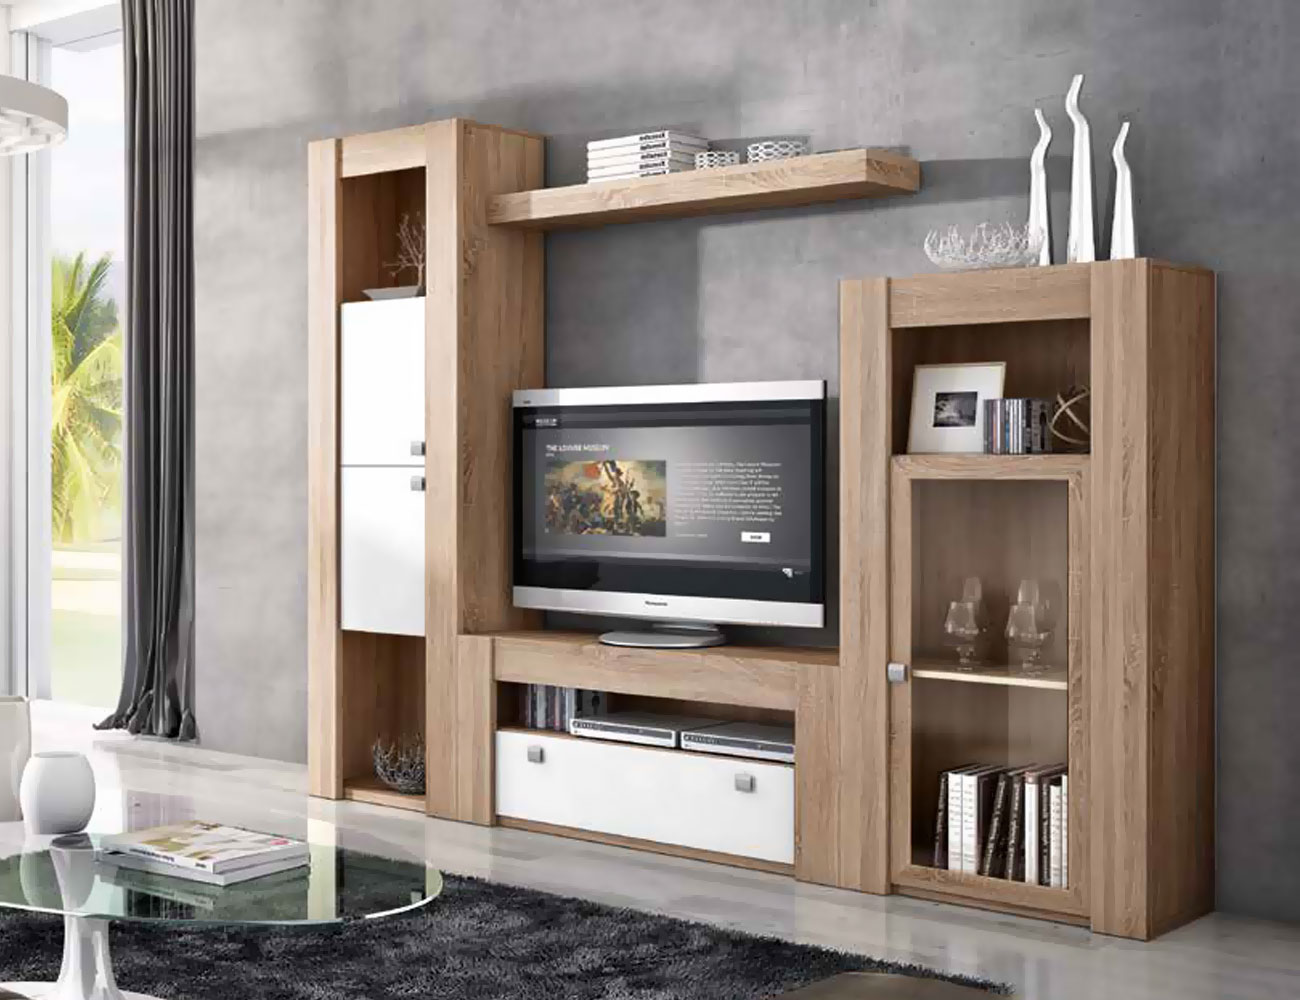 Mueble de sal n modular moderno en cambrian blanco 2276 for Factory del mueble melero